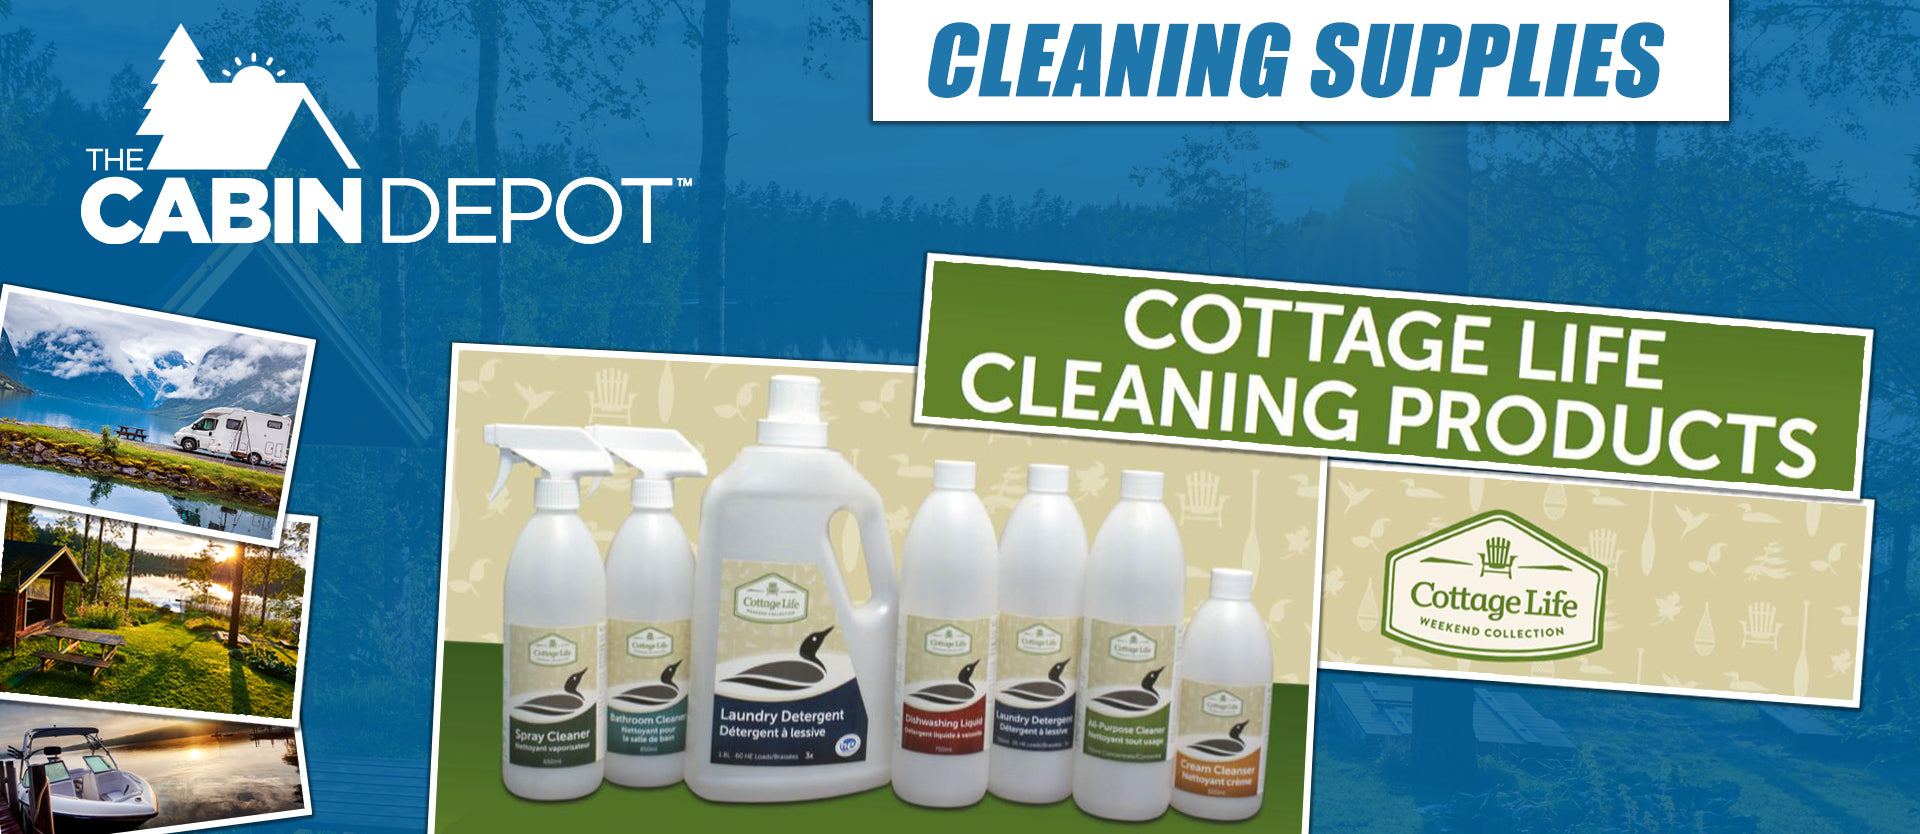 Cleaning Supplies The Cabin Depot ™ Canada